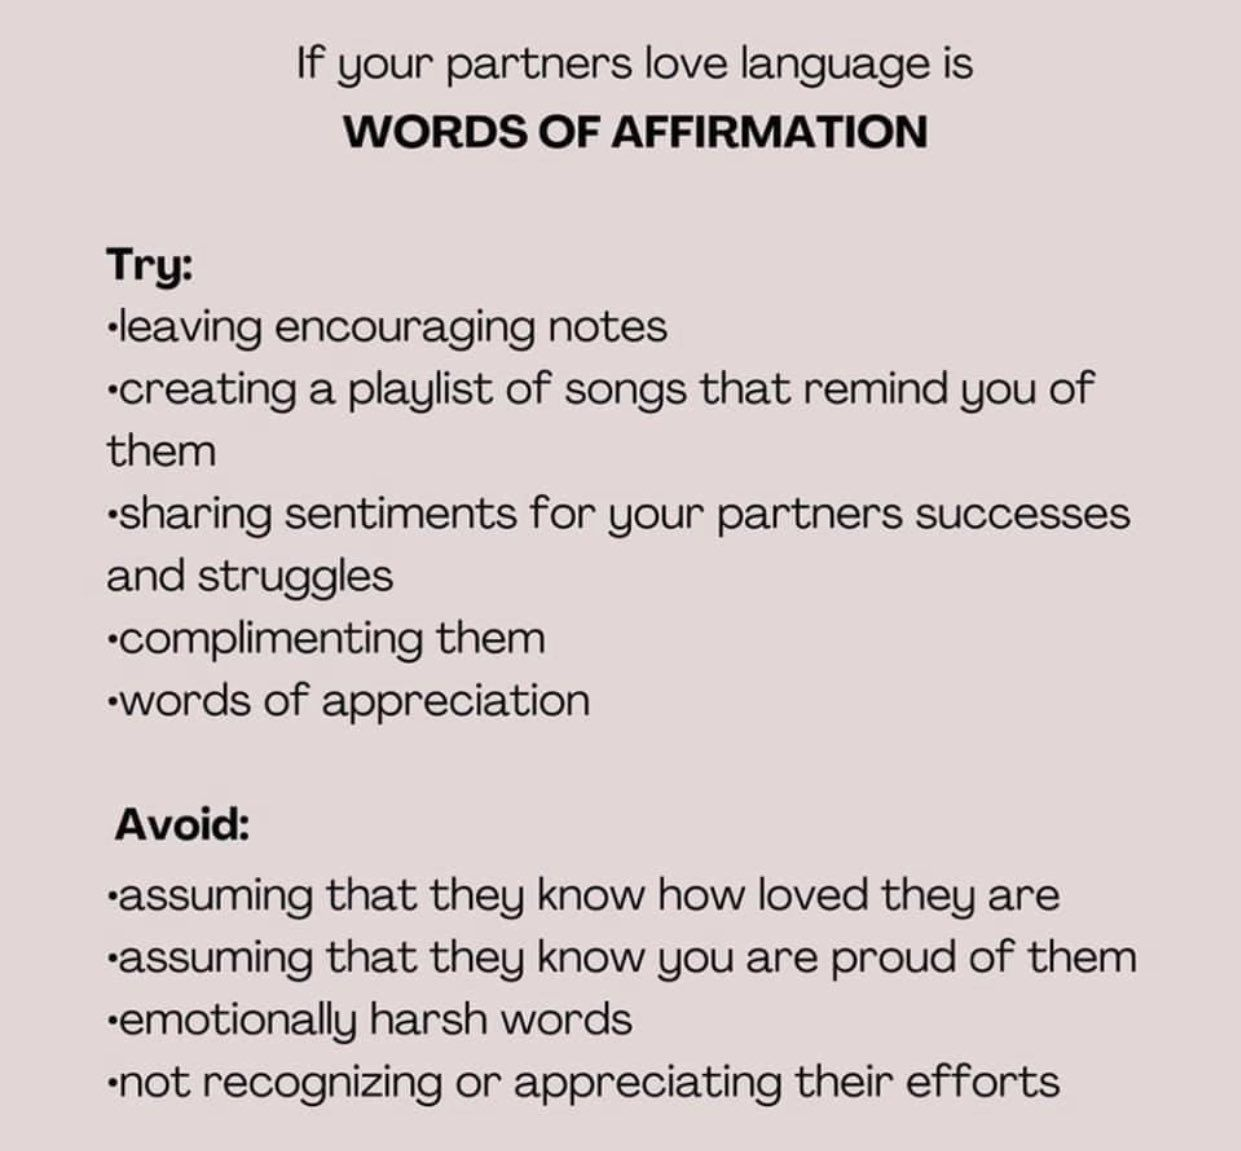 Pin By Whitney Cusack On Ideas Words Of Affirmation Compliment Words Love Languages